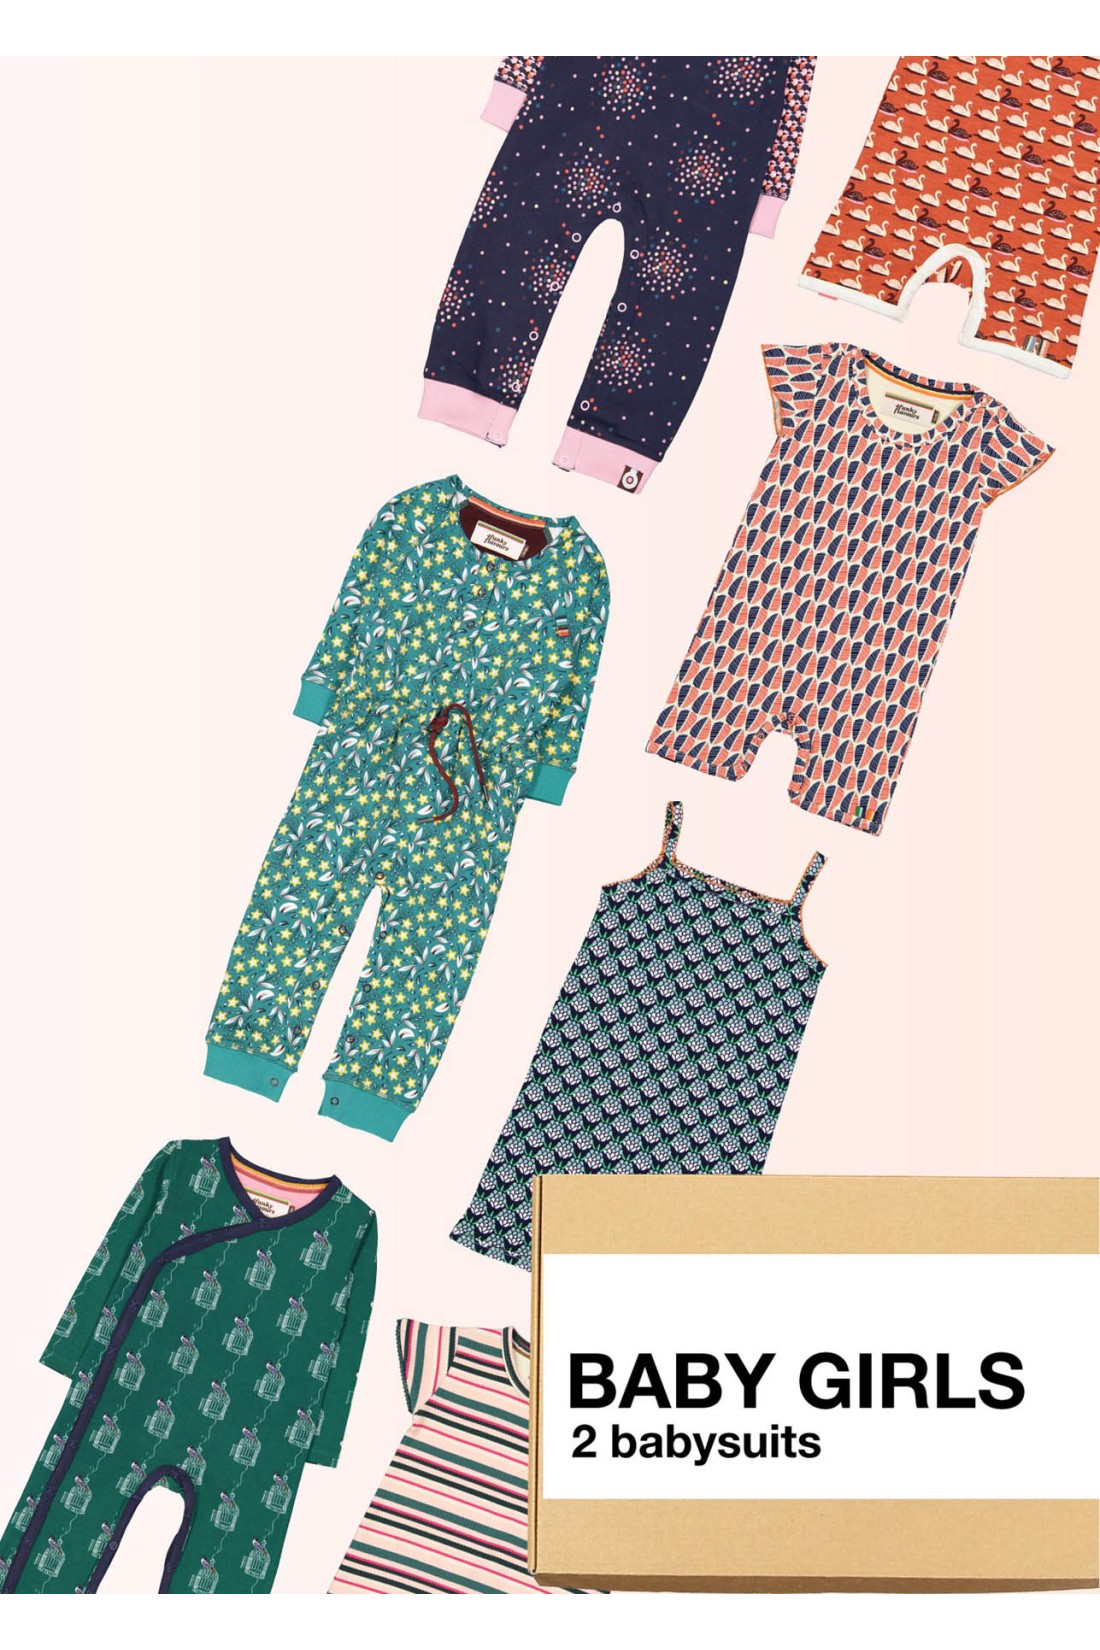 Surprise Box Baby Girl - 2x Baby Suits